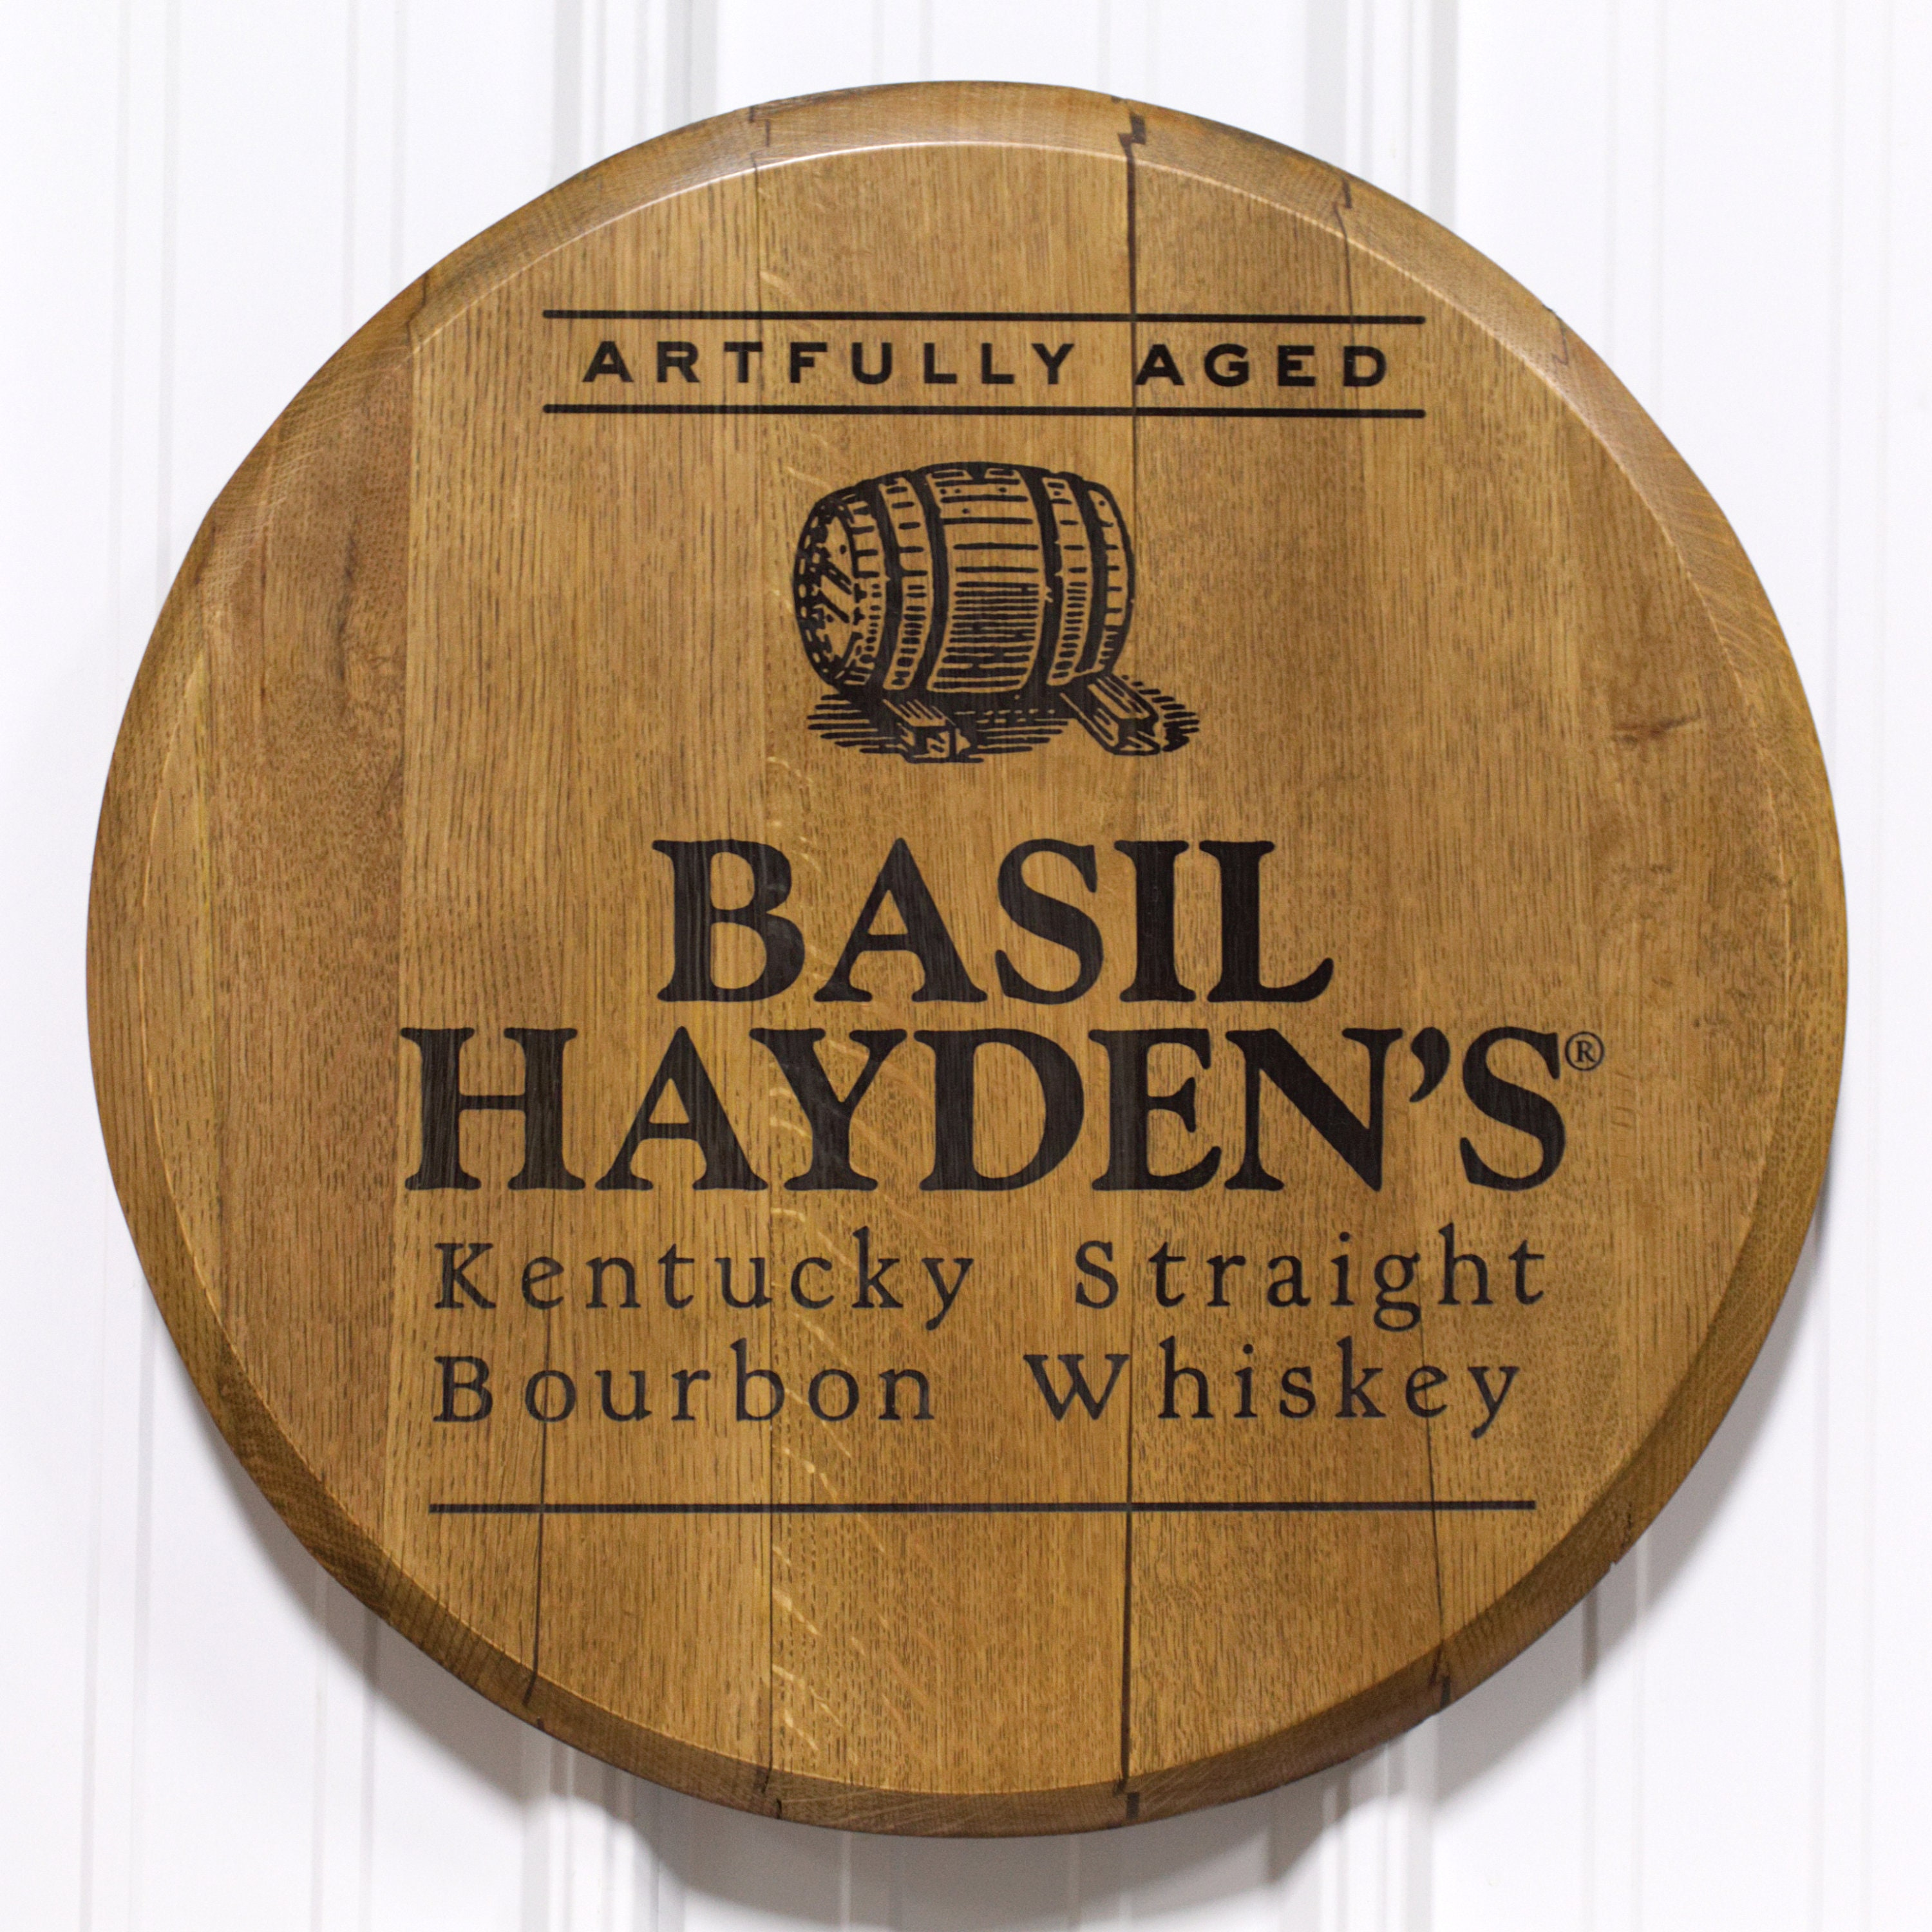 Real Reclaimed and Refinished Barrel Head with Beautiful Basil Haydens Bourbon Whiskey Engraving Laser Engraved Basil Hayden/'s Barrel Head